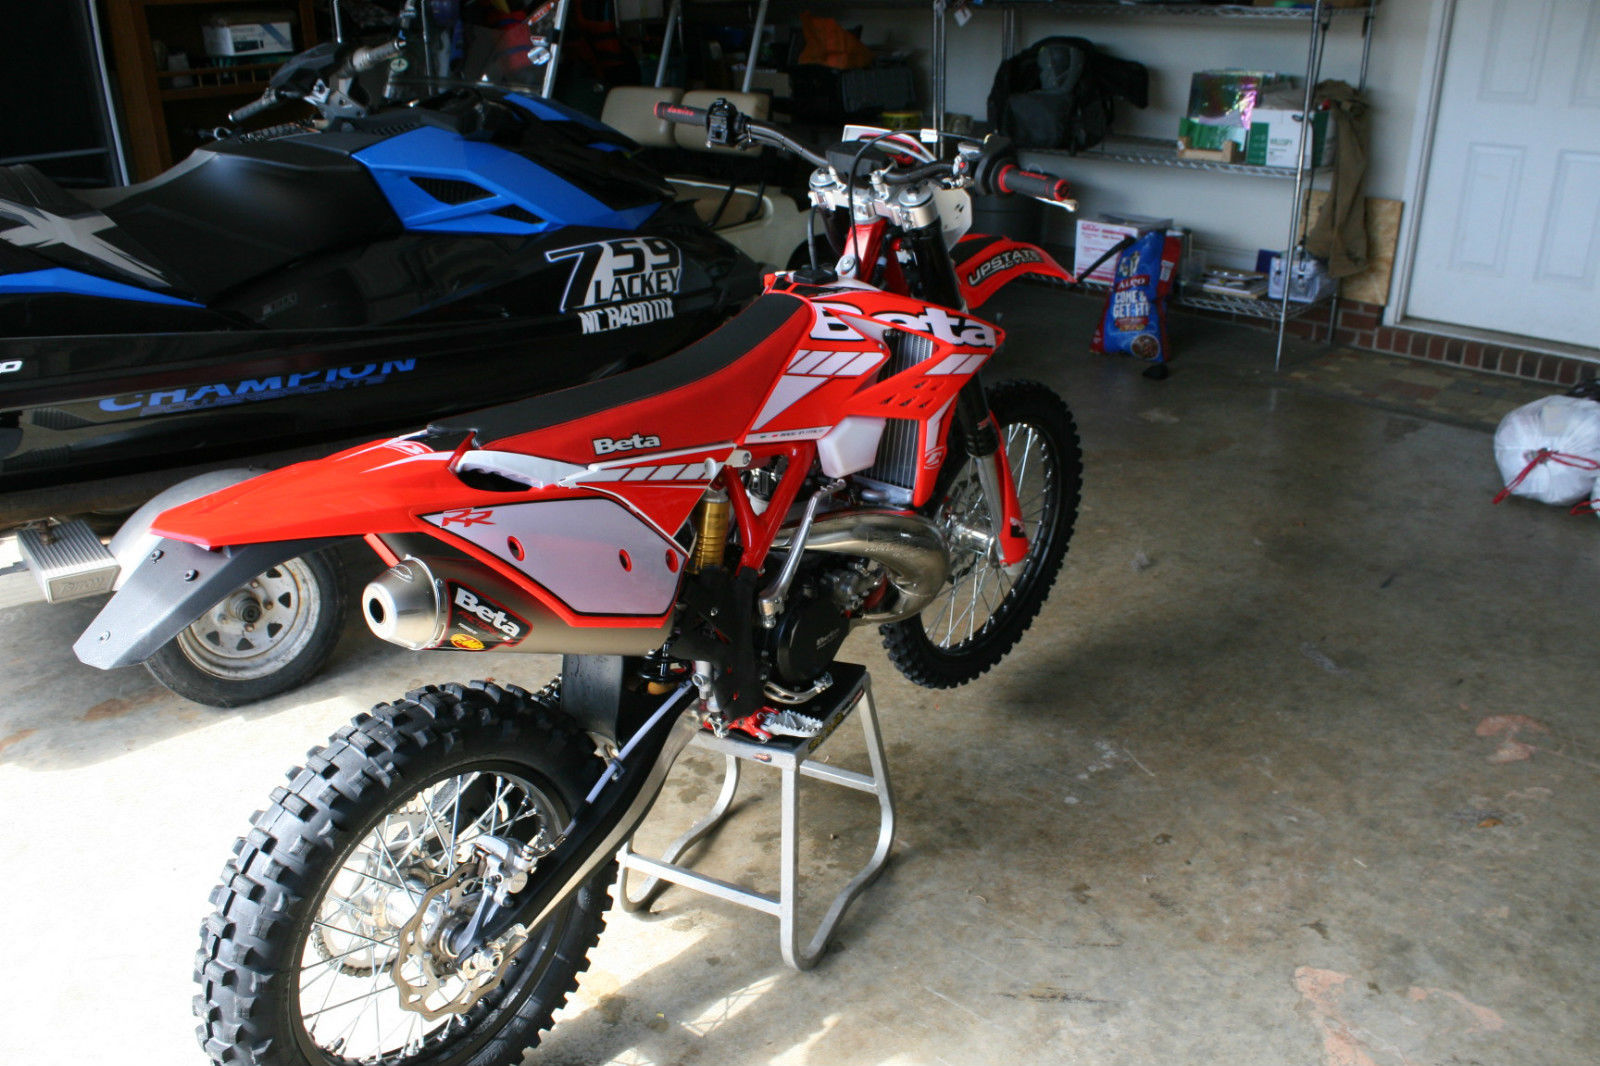 2015 Beta 300 Rr 2stroke  Title This   Better Than Ktm Exc